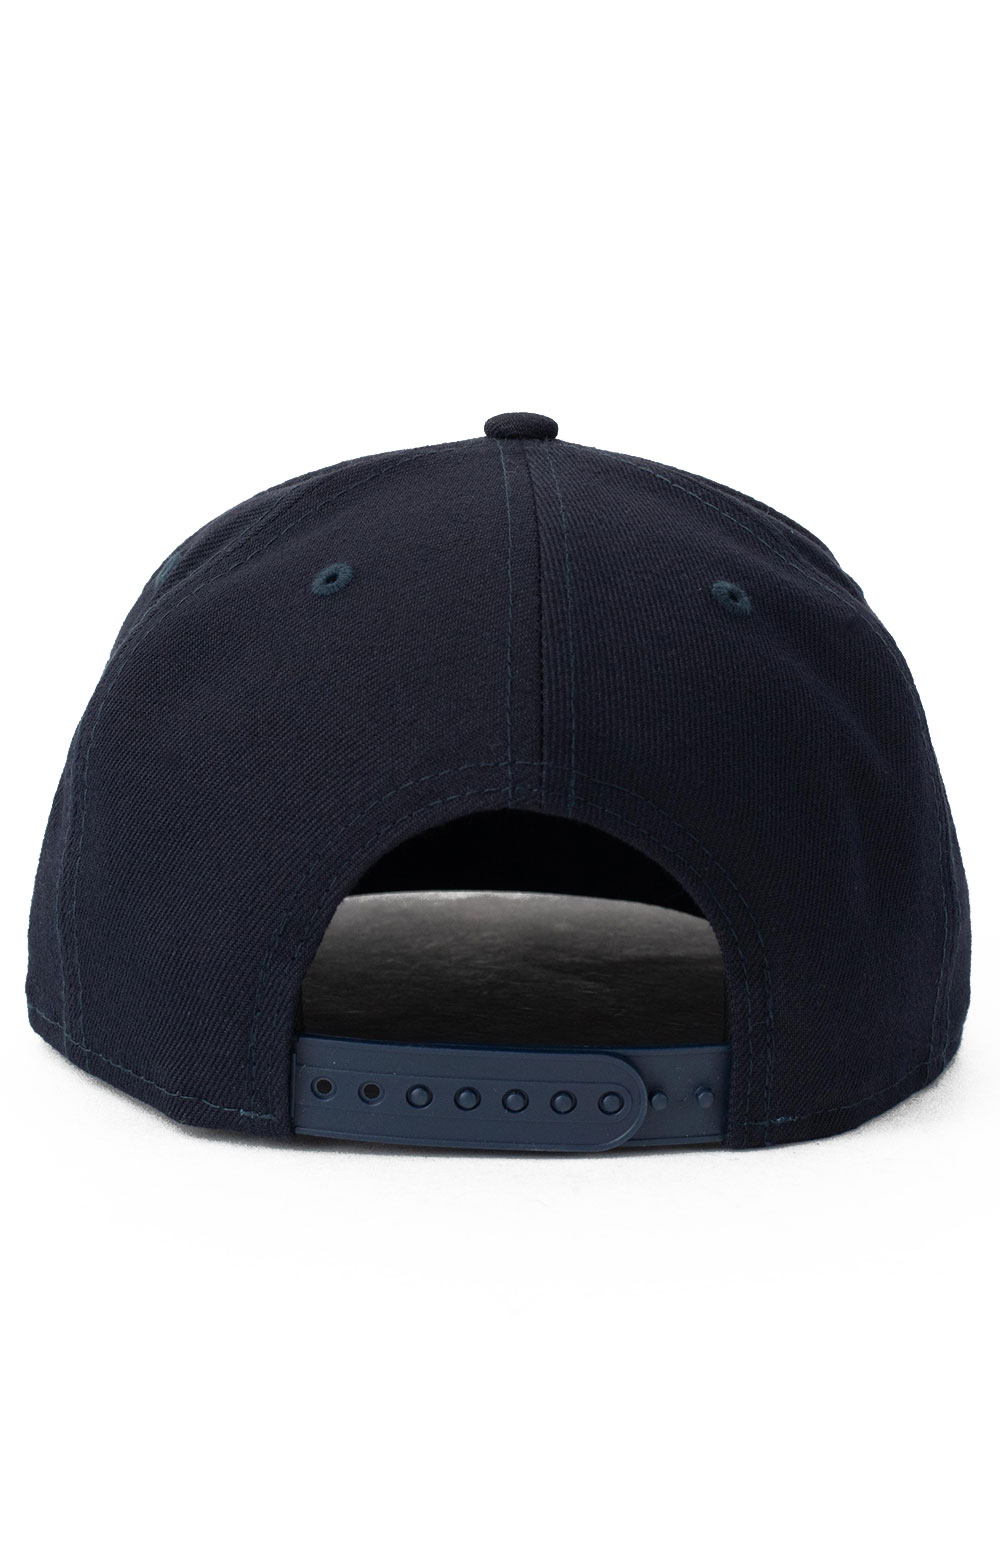 9Fifty Arched NY Yankees Snap-Back Hat 3